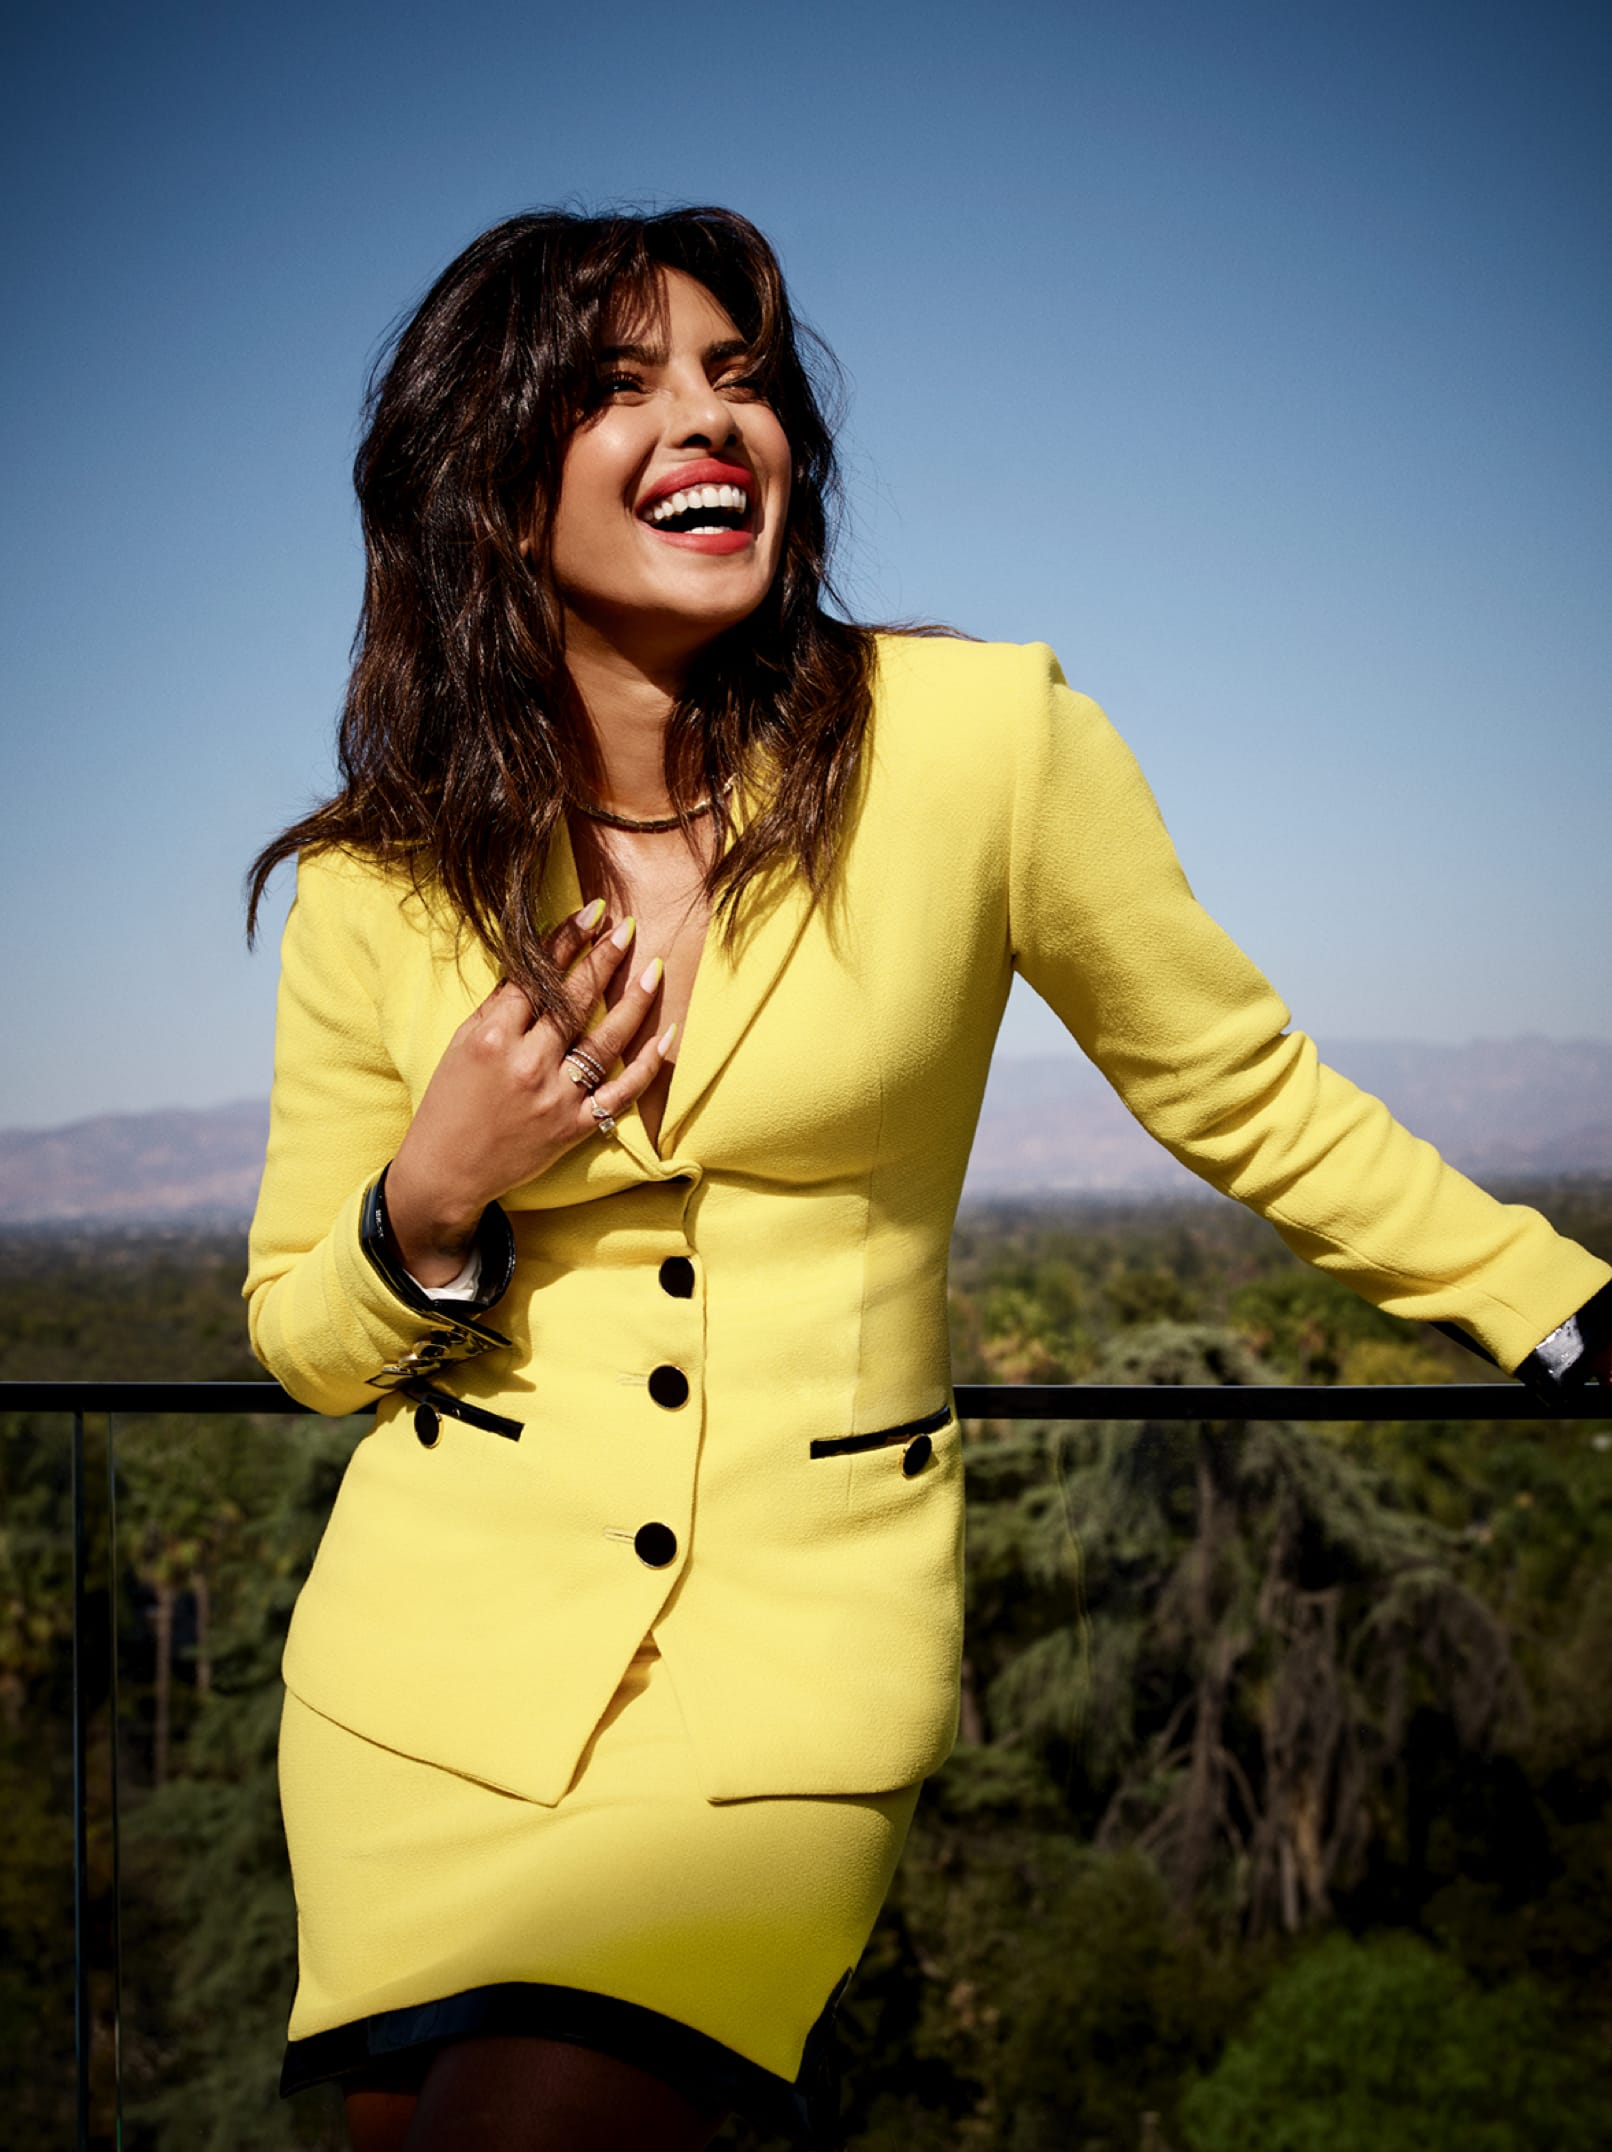 Priyanka Chopra Jonas poses, laughing, on a balcony, with Hollywood behind her. She sports a bright yellow suit with black buttons.